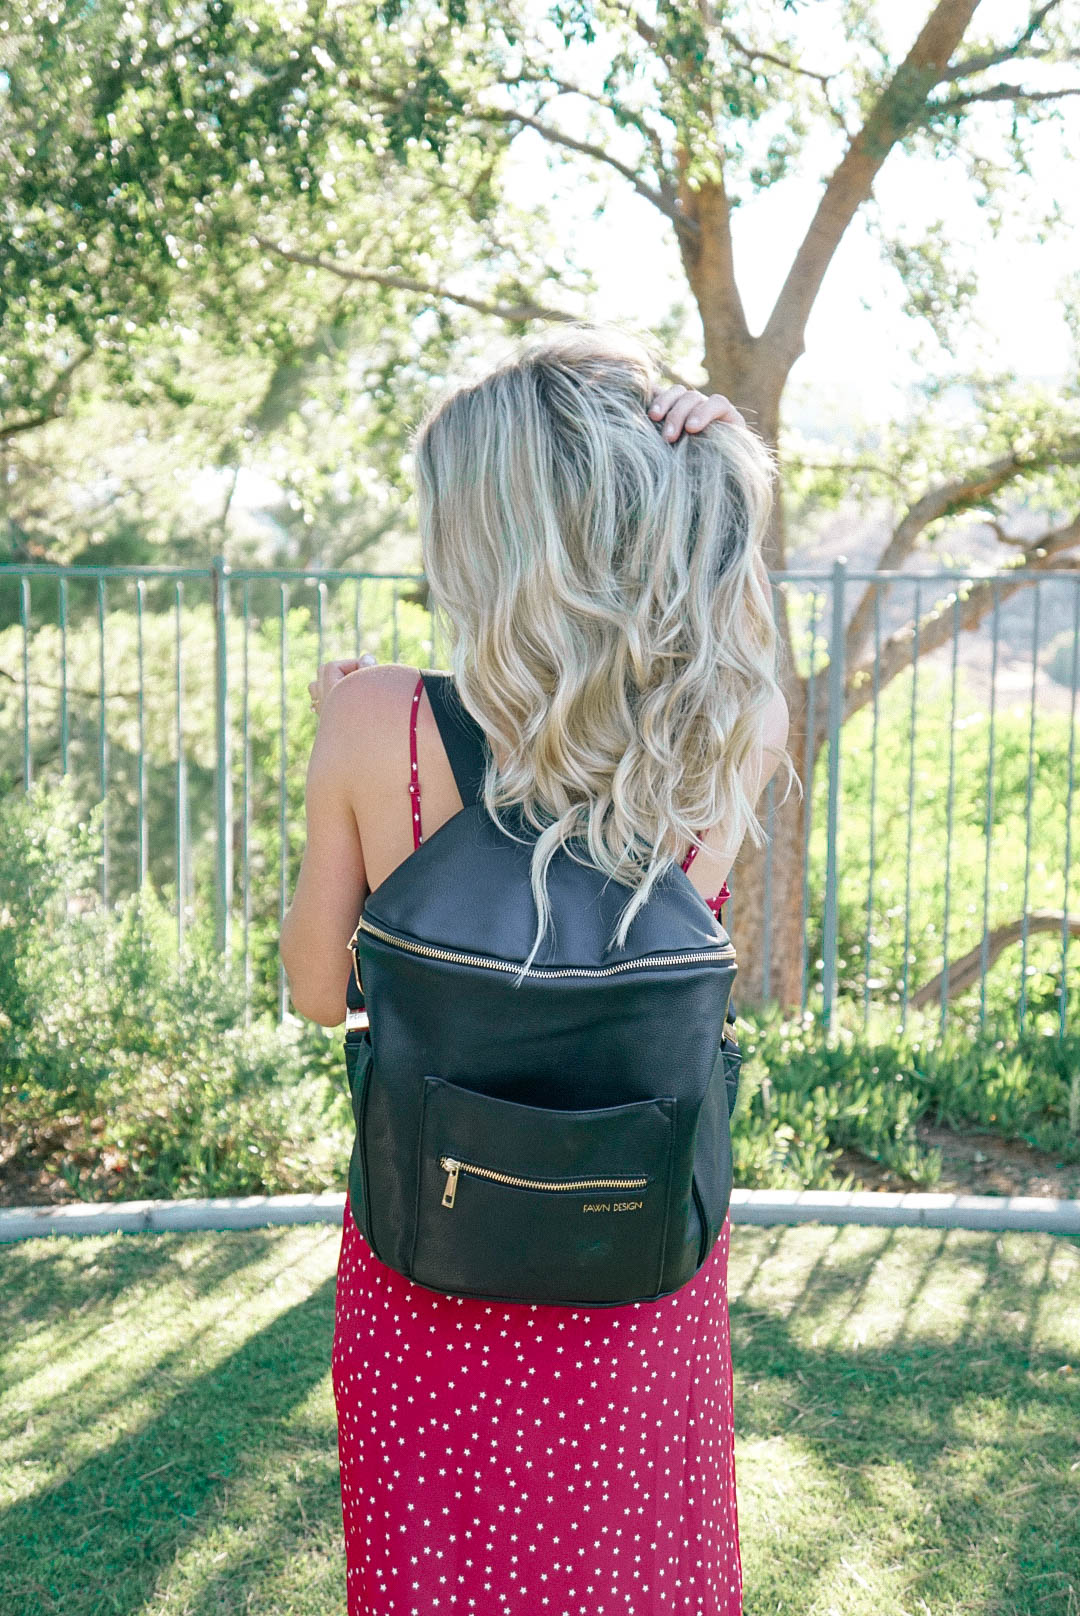 Charming My Only Regret Is Not Discovering This Mommy Me Fawn Design Bags Beauty Beasties Fawn Design Mini Is A Rock Two Pinecones That She Found At I Love Se Bags baby Fawn Diaper Bag